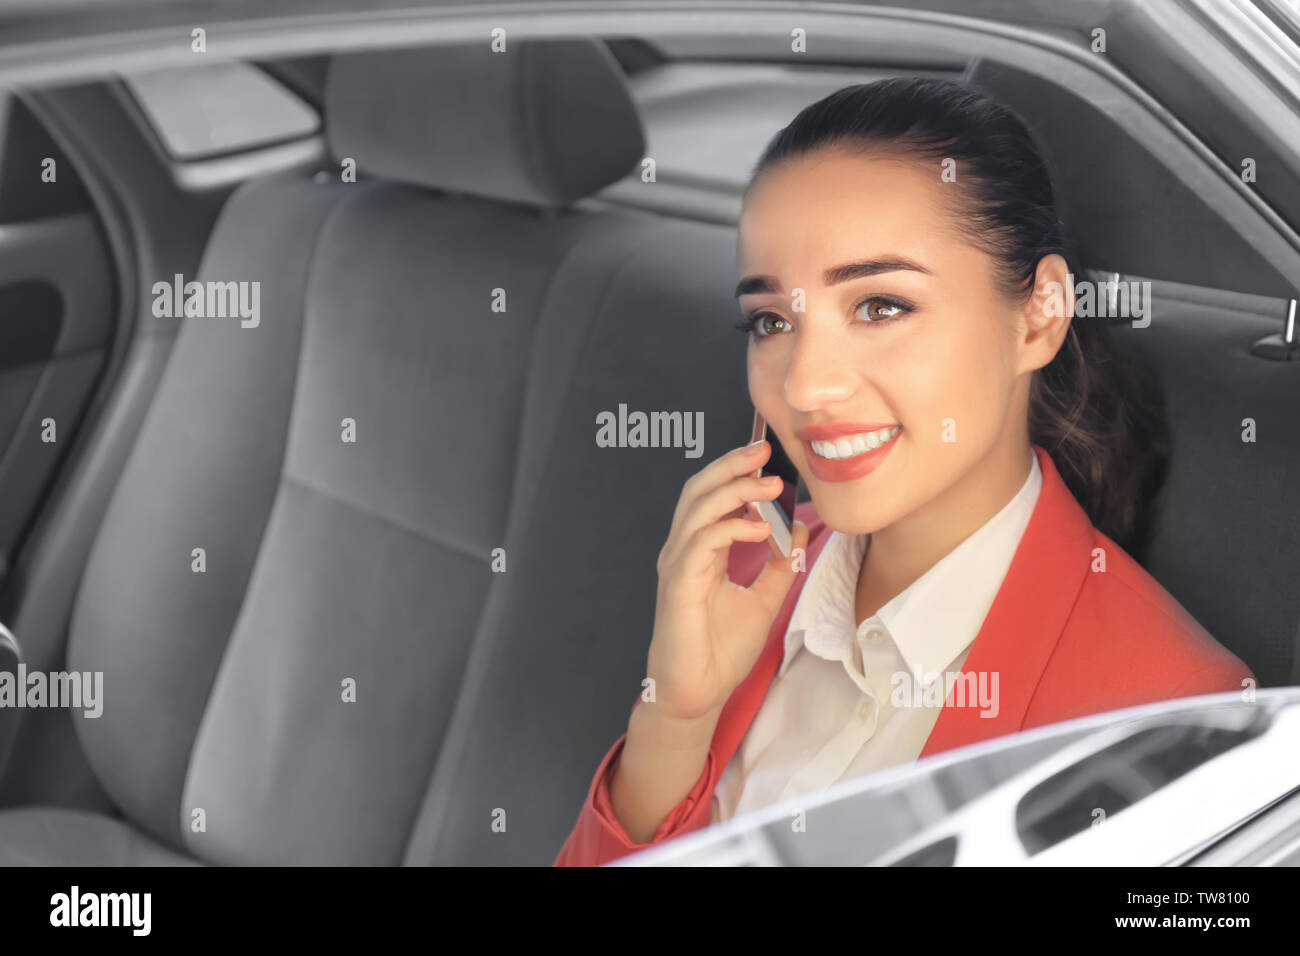 Young businesswoman on backseat of taxi car - Stock Image